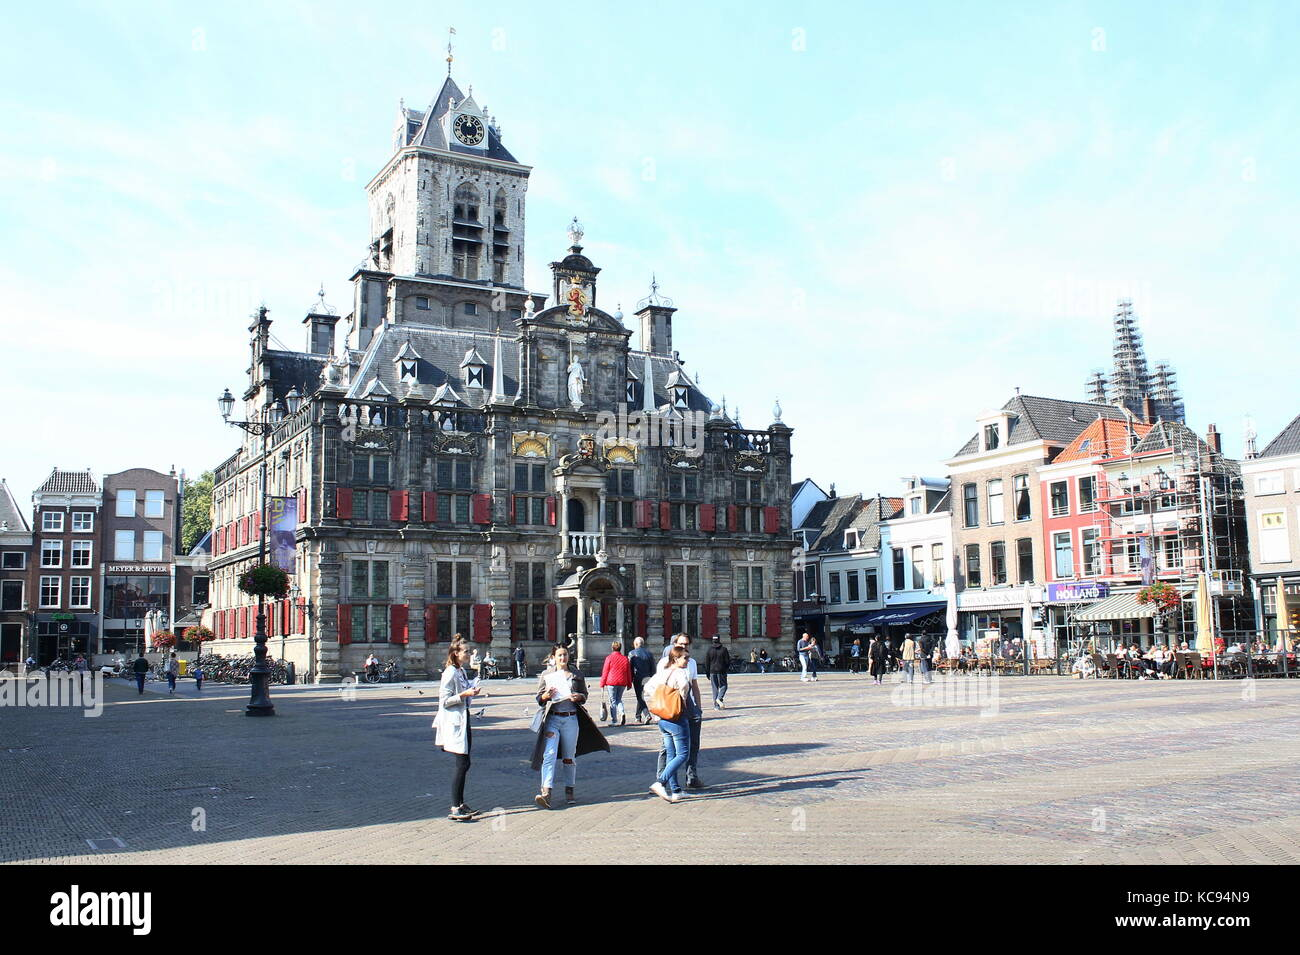 Young tourist girls in front of 17th century Renaissance style City Hall (Stadhuis) on the central Markt square - Stock Image